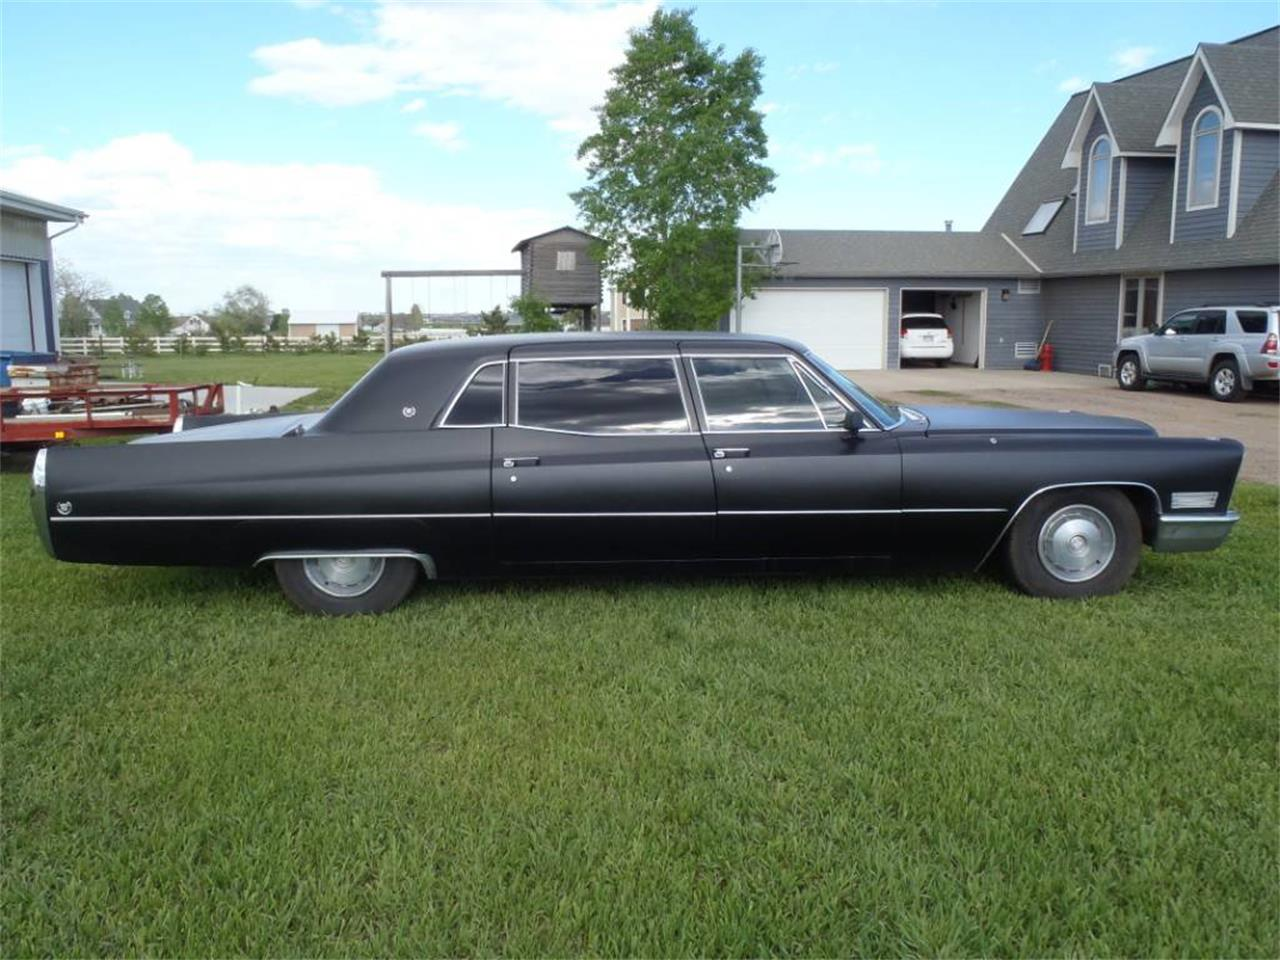 Large Picture of 1967 Cadillac Fleetwood Limousine located in California Offered by a Private Seller - OD55